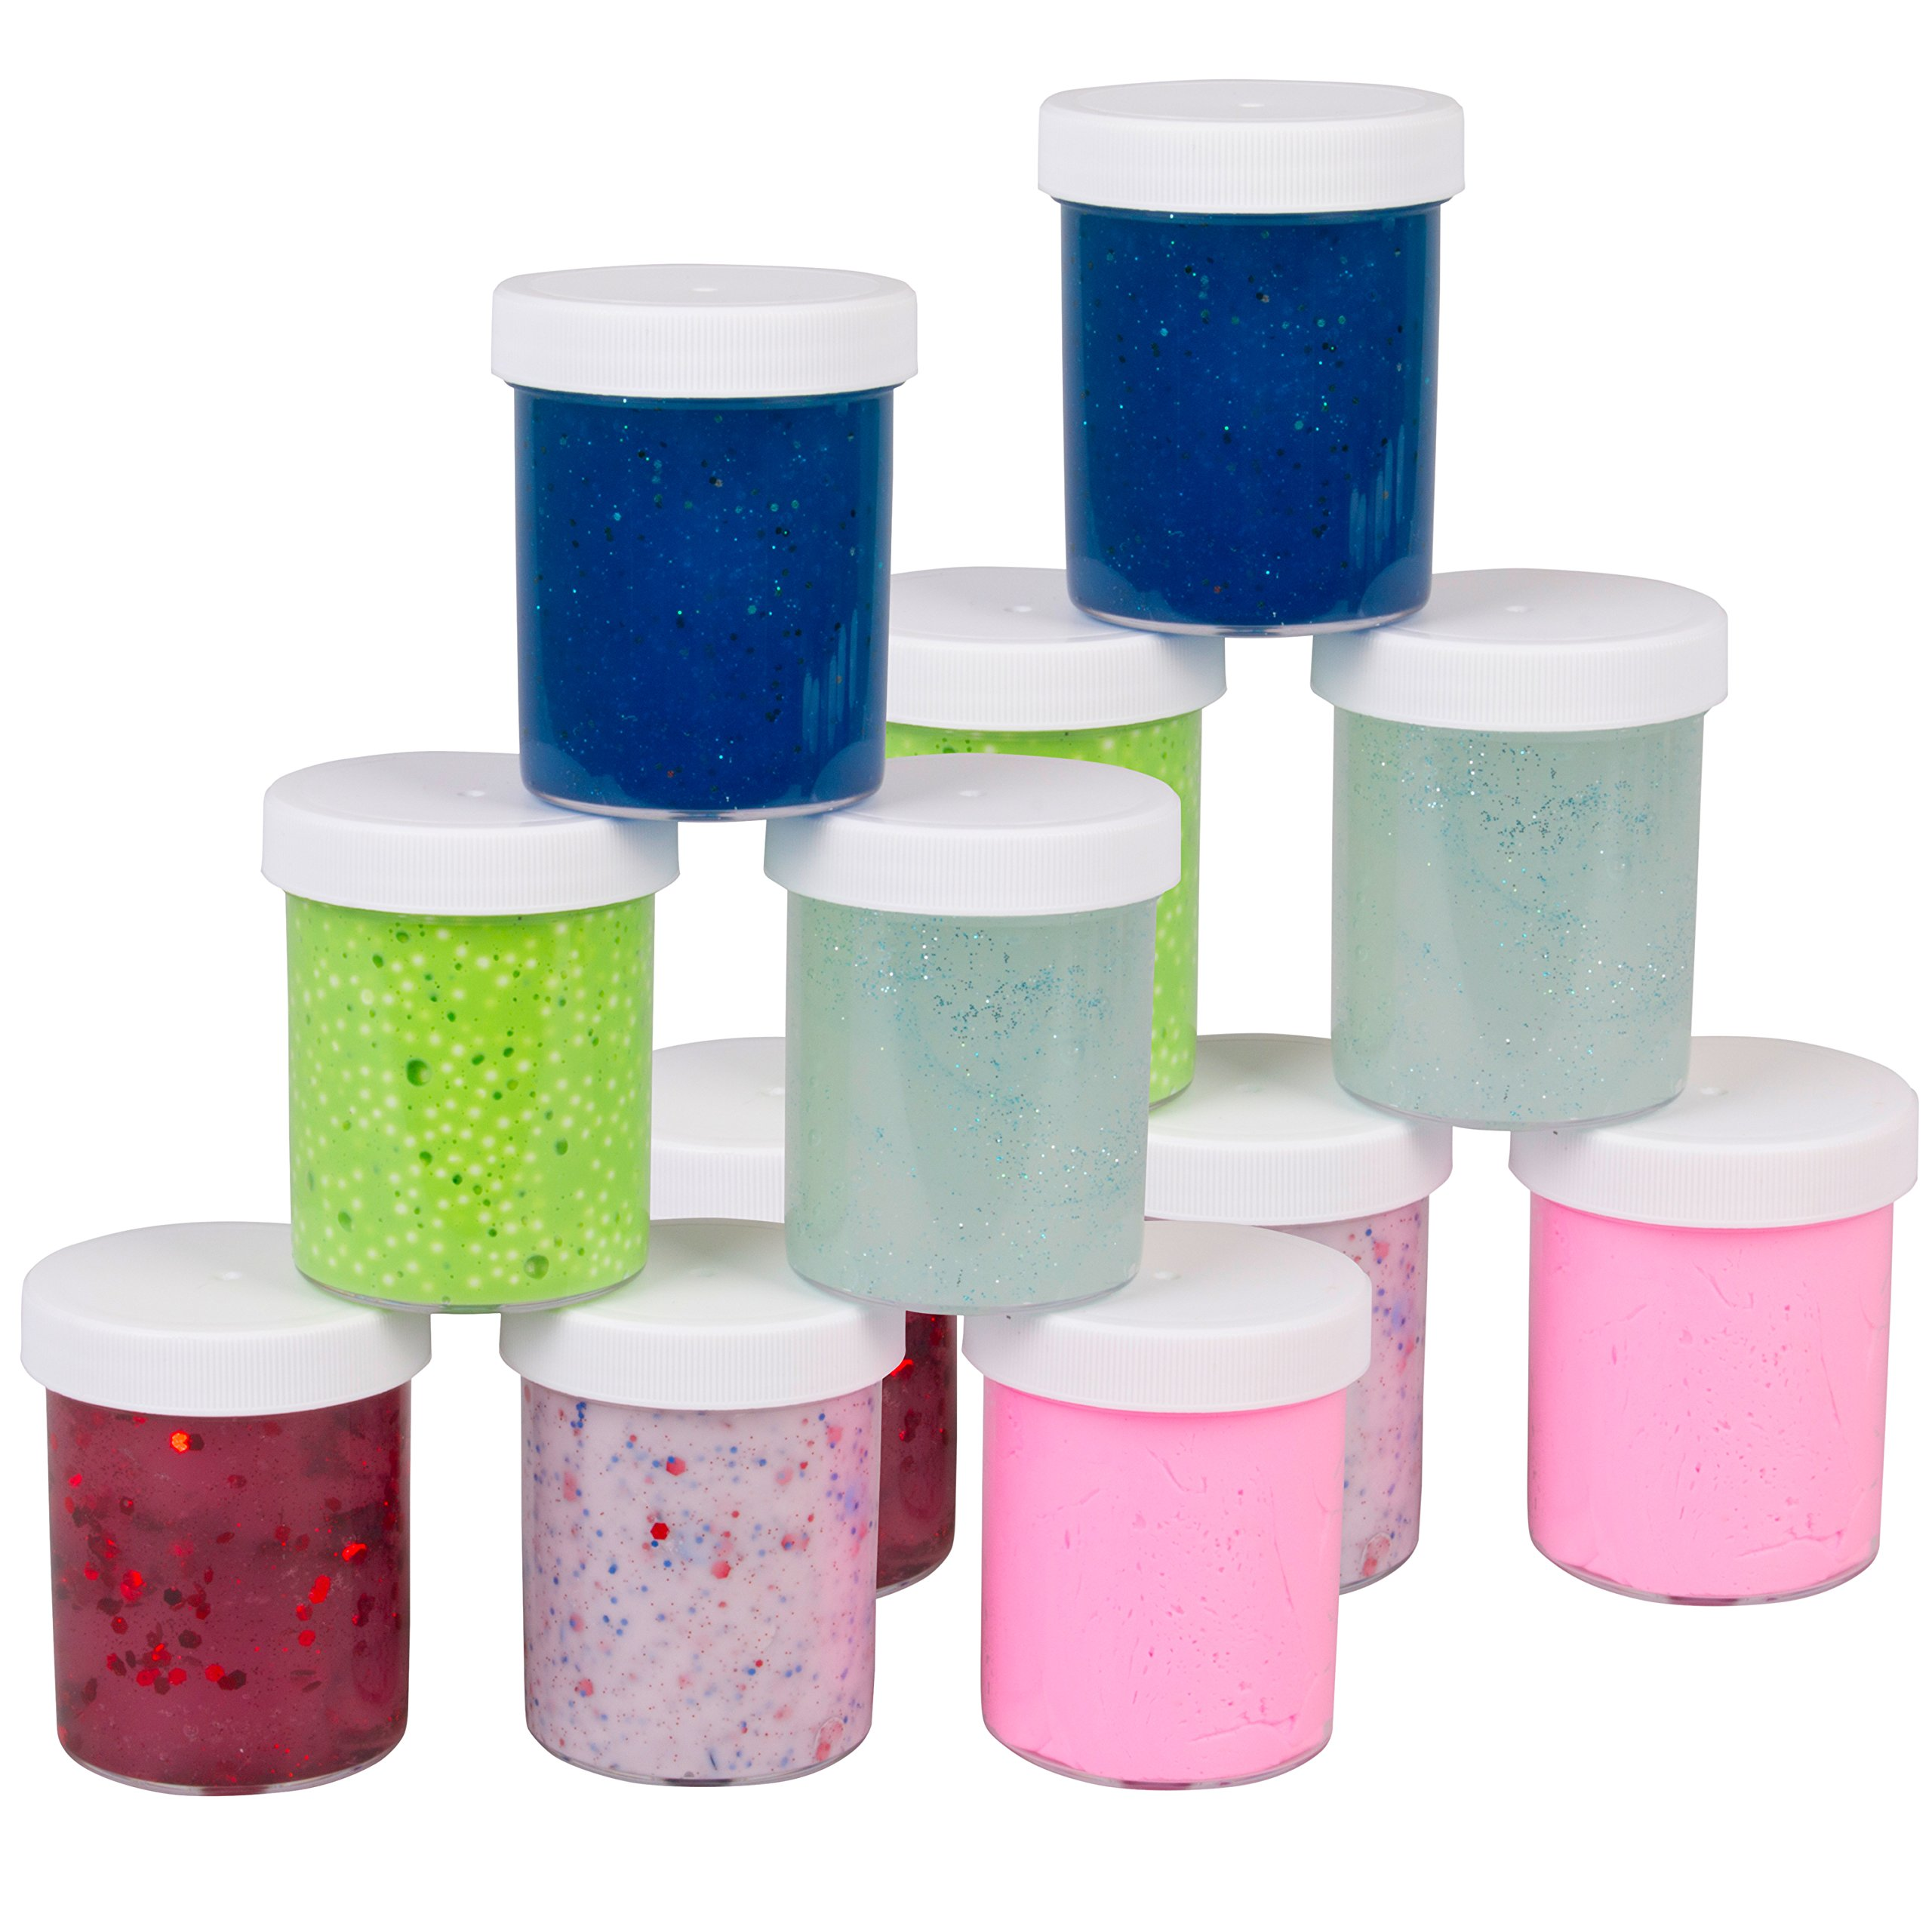 SCS Direct Slime Storage Jars 4oz (12 Pack) - Maddie Rae's Clear Containers For All Your Glue Putty Making